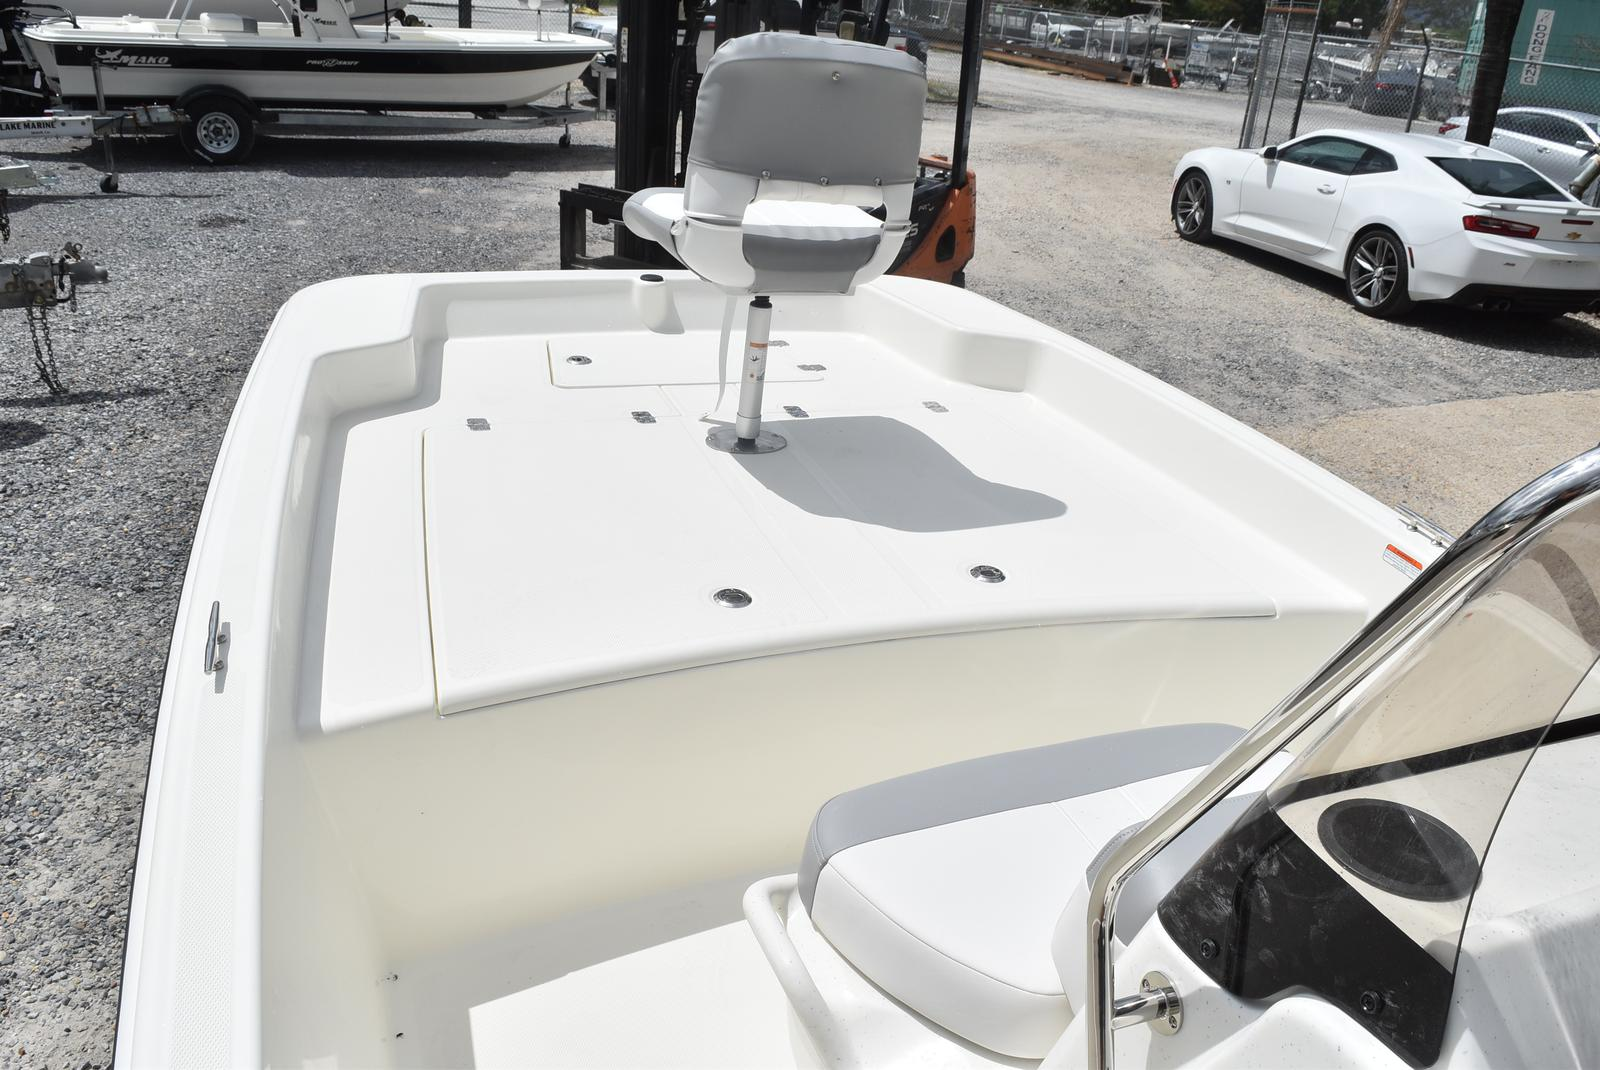 2020 Mako boat for sale, model of the boat is Pro Skiff 17, 75 ELPT & Image # 444 of 702